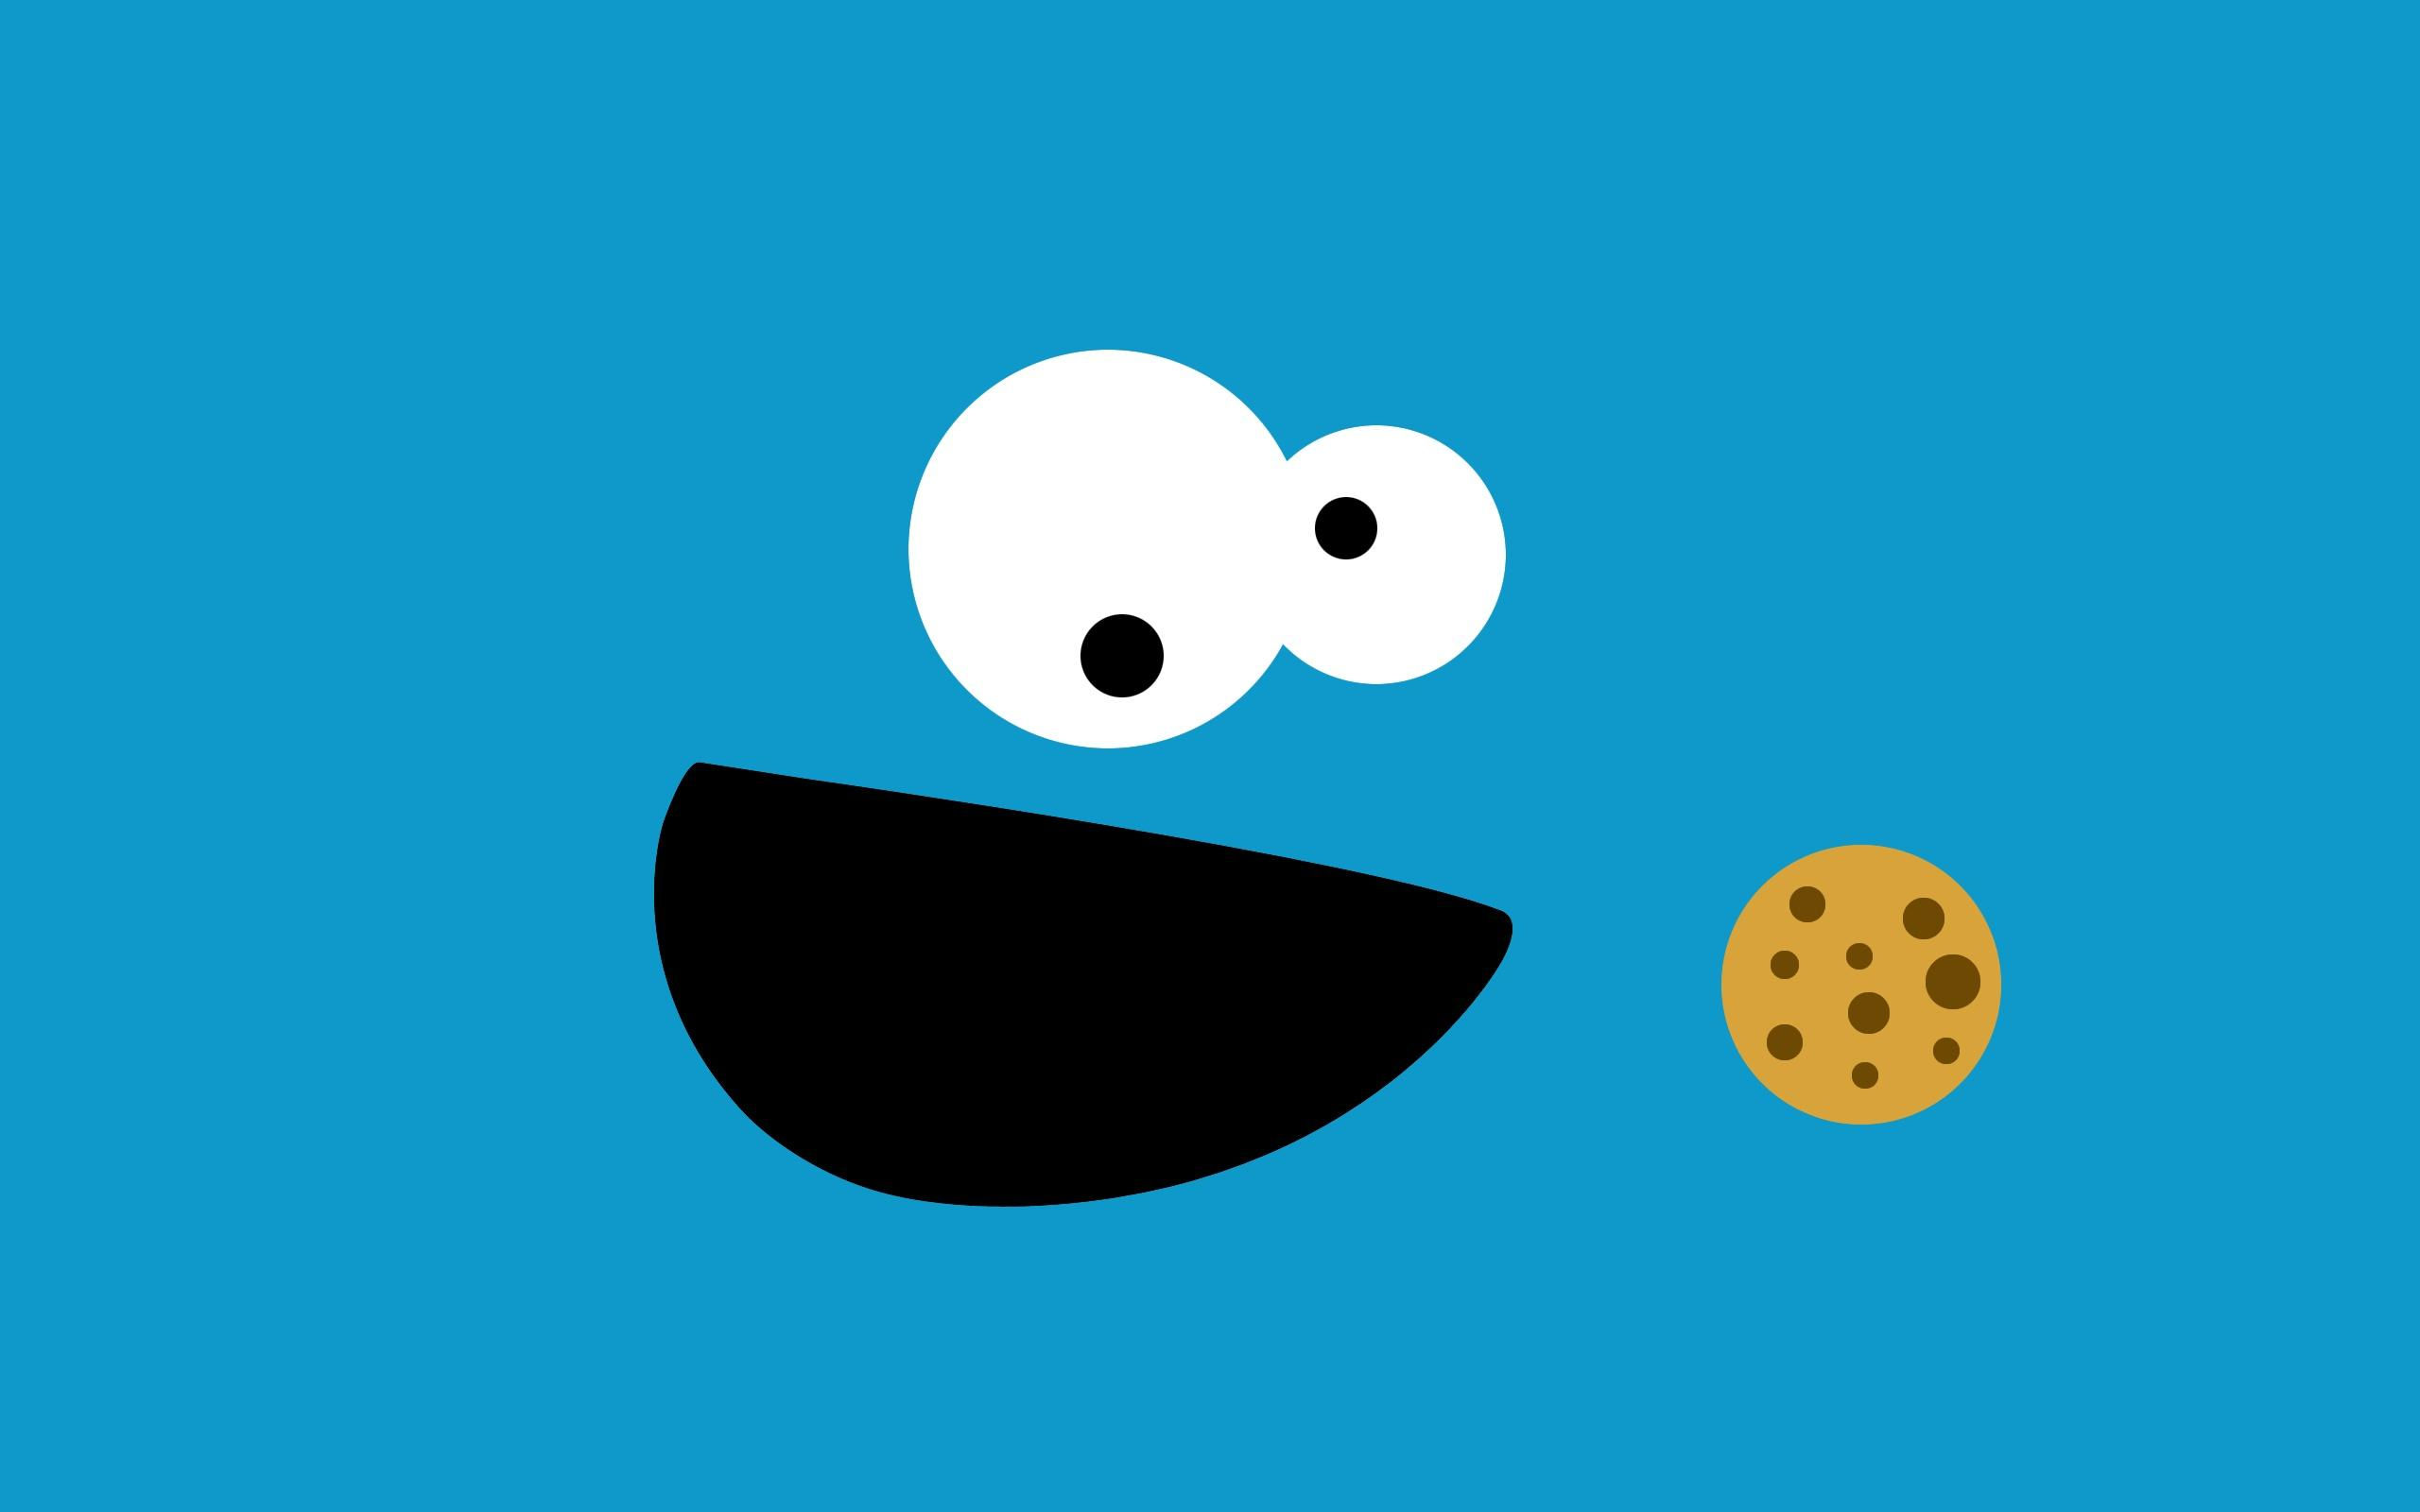 Обои Коржик aka Cookie Monster 2560x1600